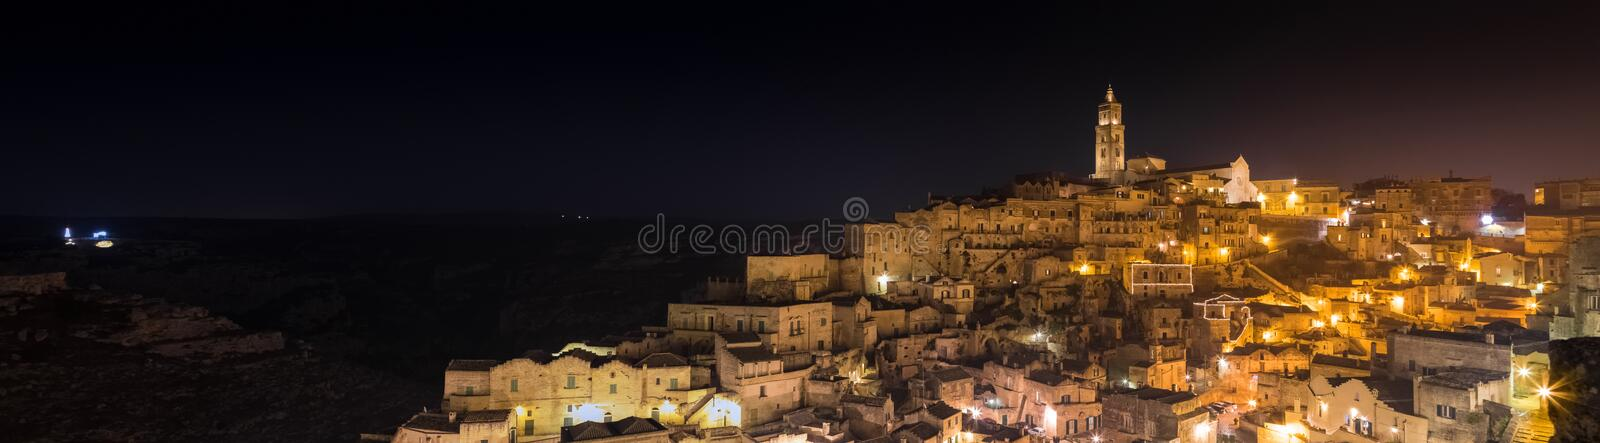 Panoramic view of typical stones (Sassi di Matera) and church of Matera UNESCO European Capital of Culture 2019. At night stock image